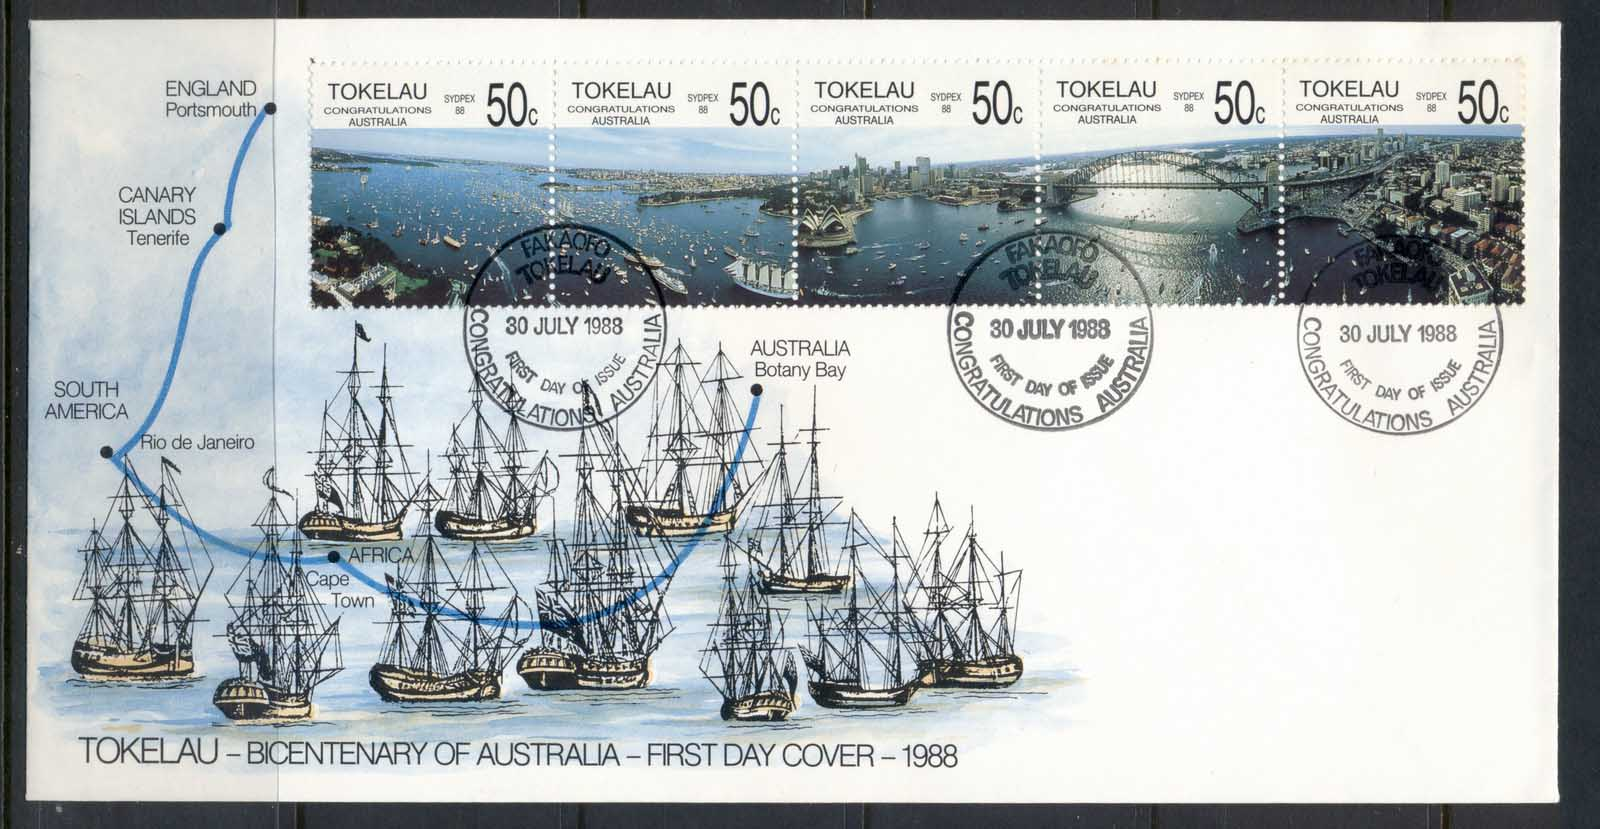 Tokelau 1988 Bicentenary of Australia FDC